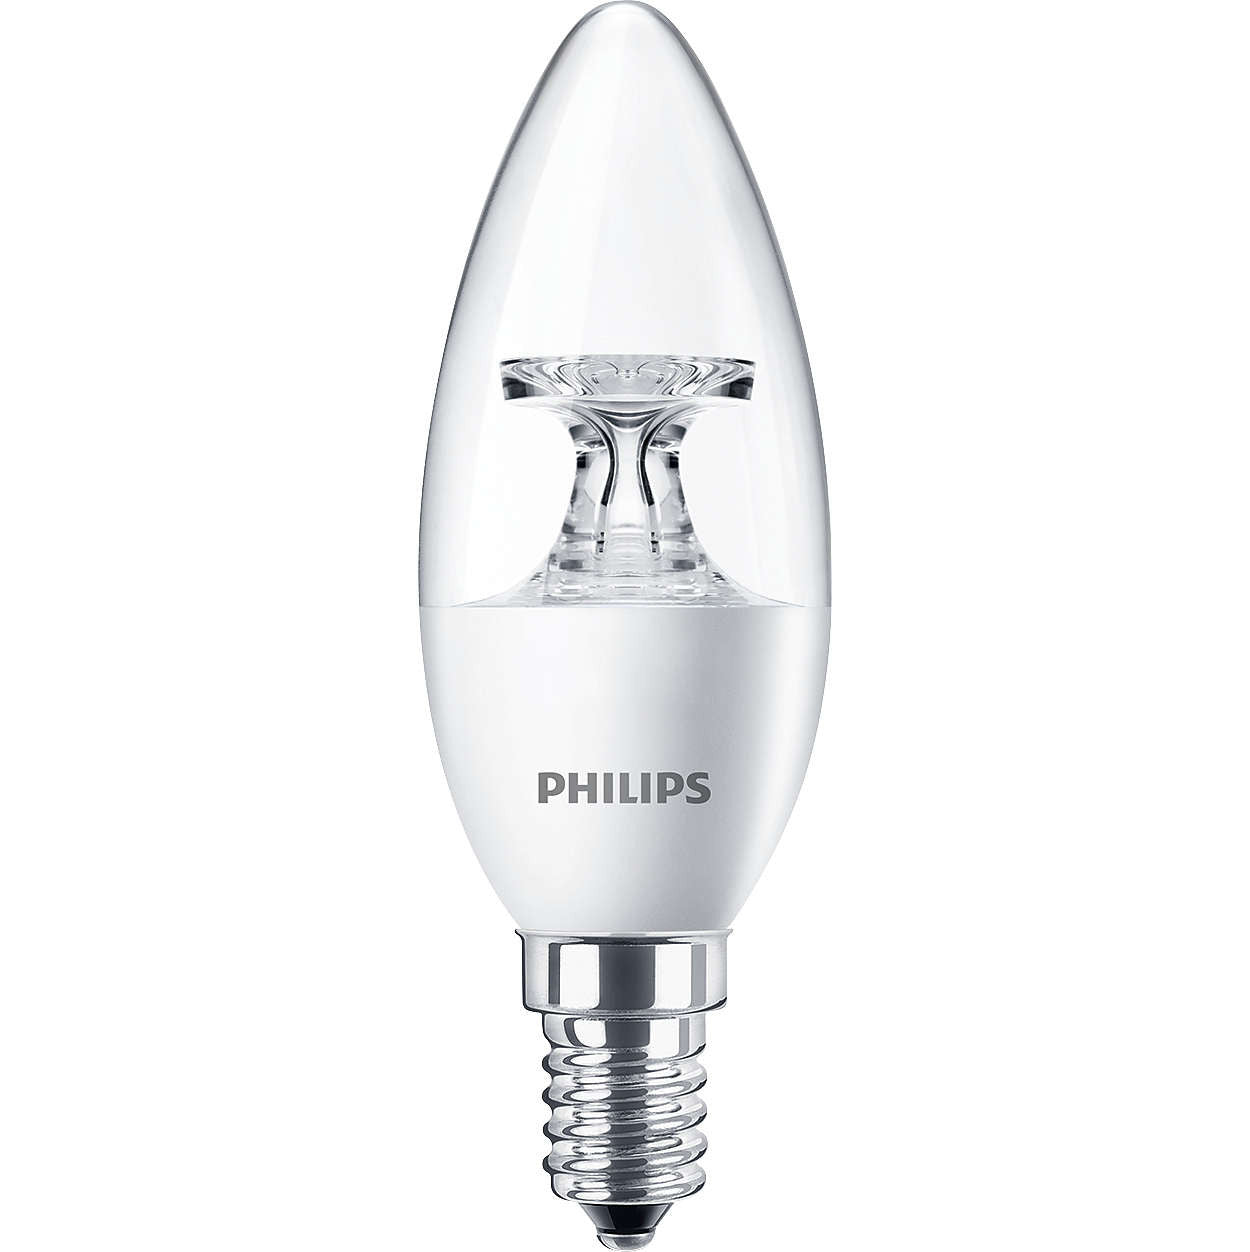 Philips CorePro E14 5.5W LED Candle (Non-Dimmable) Bulb